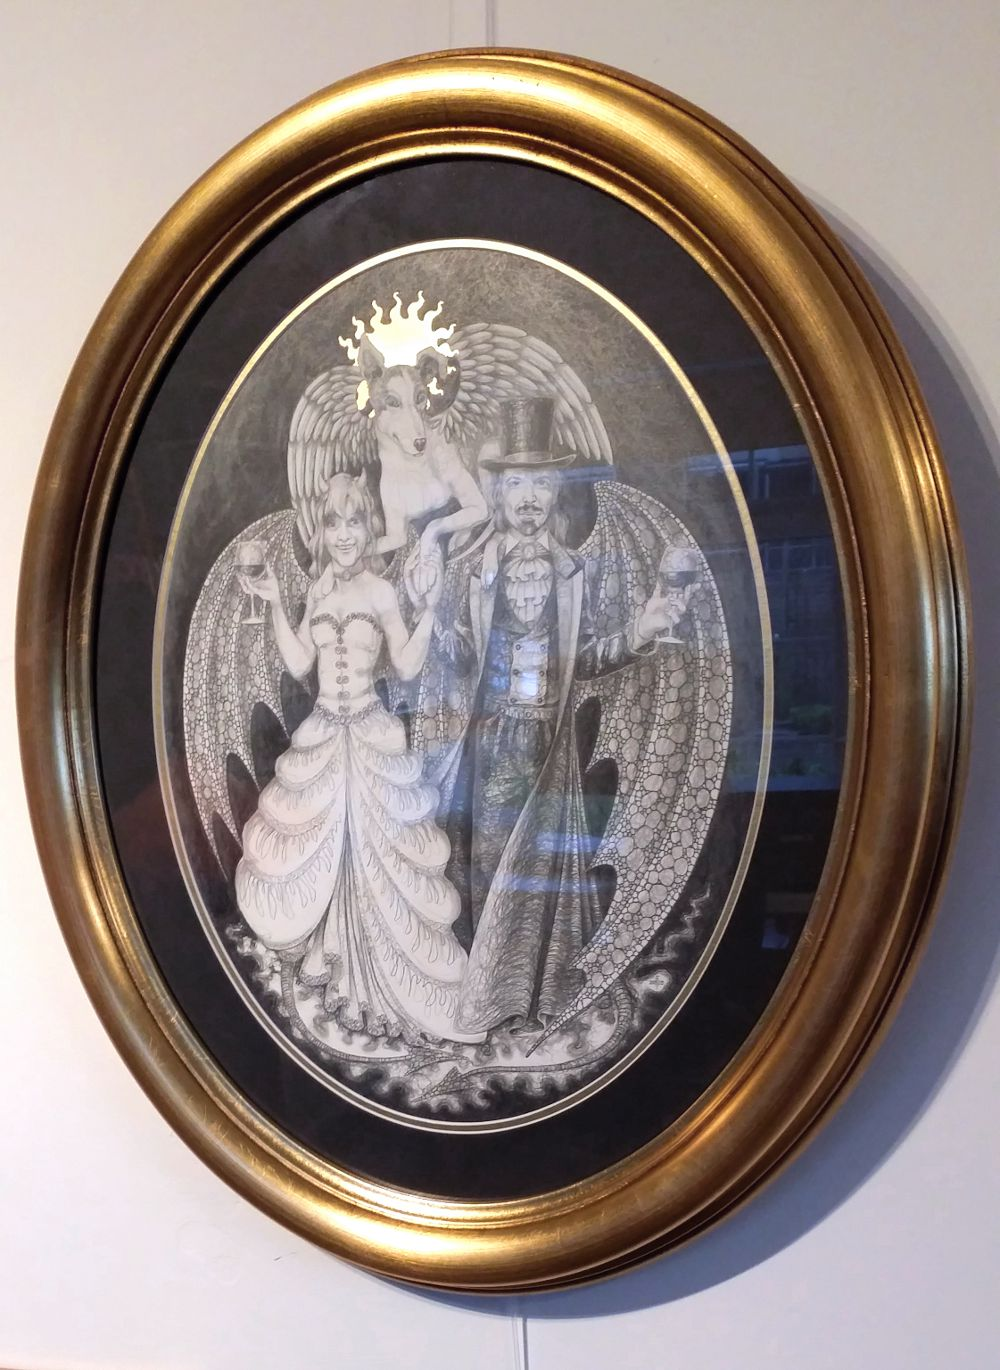 Finished picture in oval frame